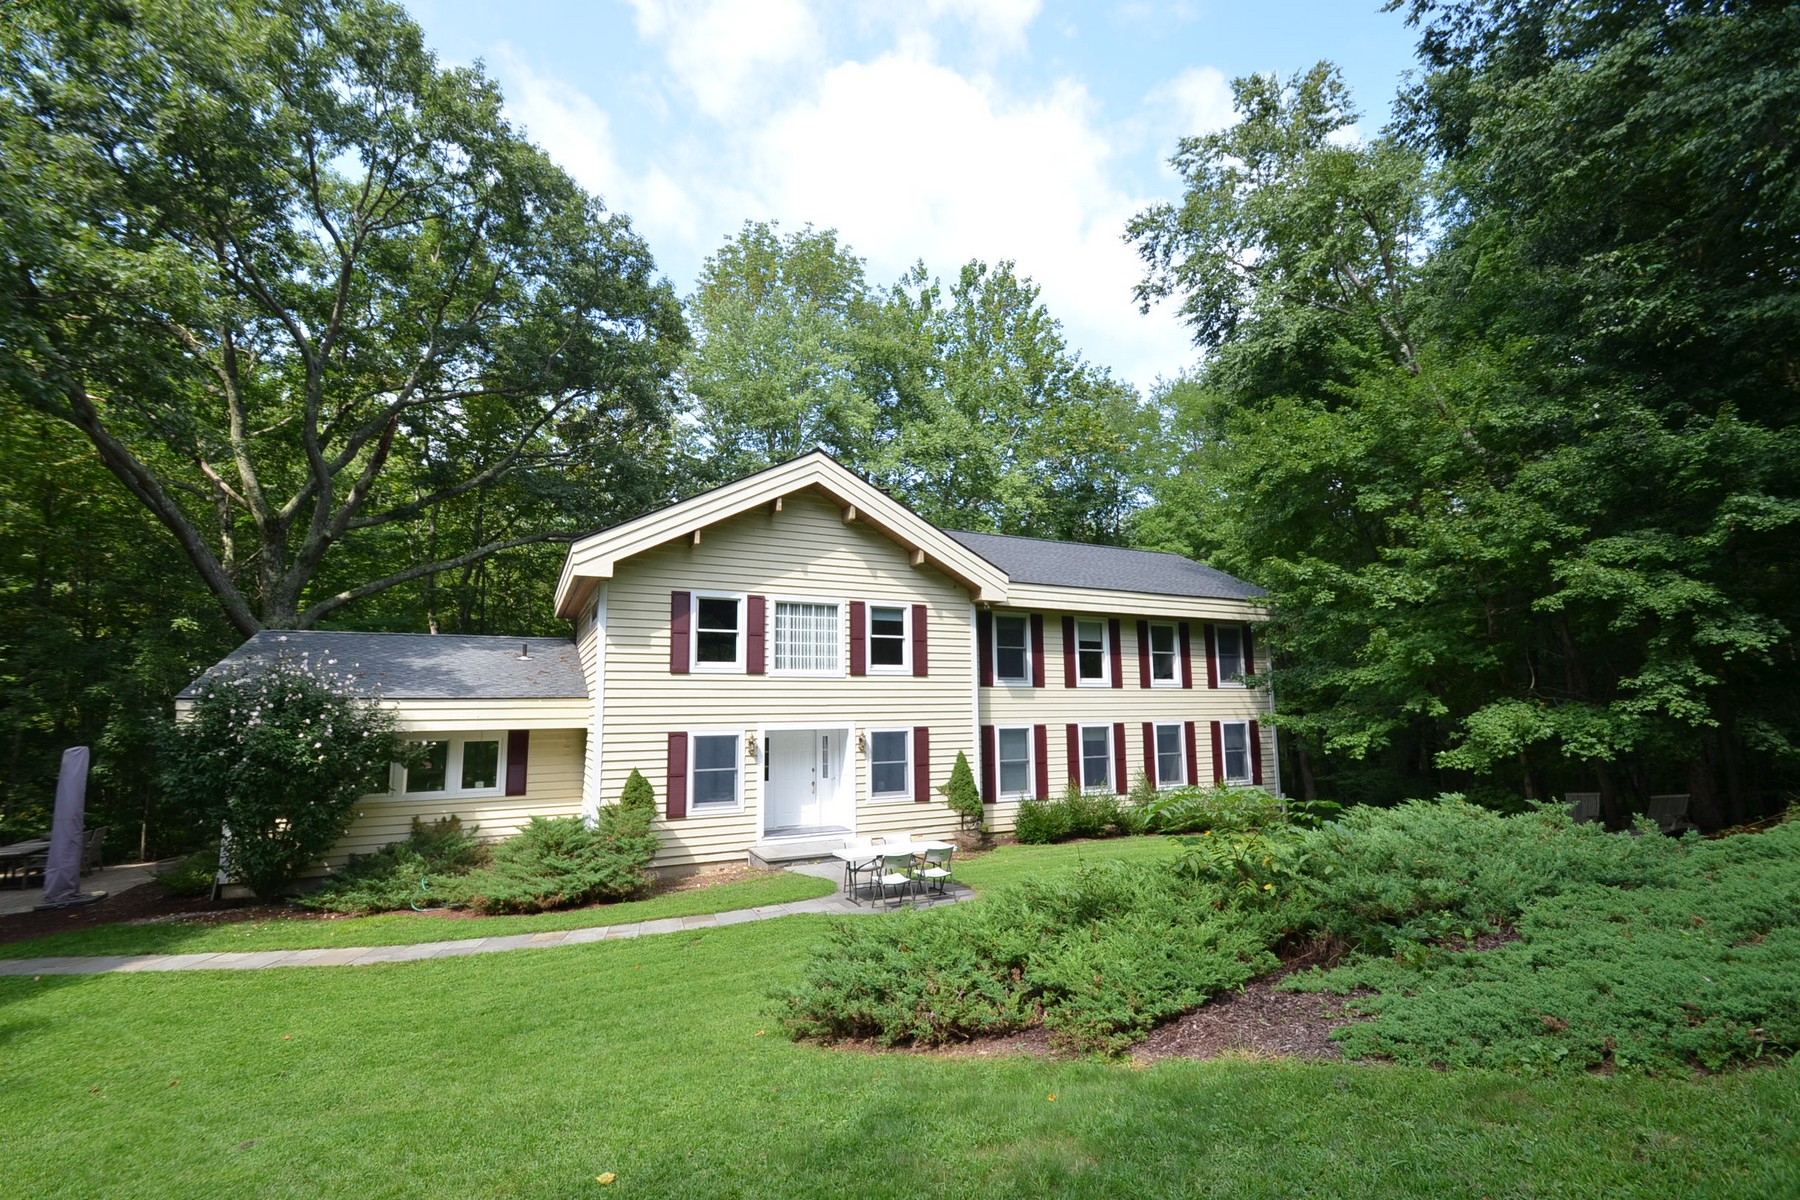 Single Family Home for Sale at Nature Lover's Paradise: Post and Beam Home on 4 Acres in Greenfield Hill 360 Catamount Road Fairfield, Connecticut 06824 United States